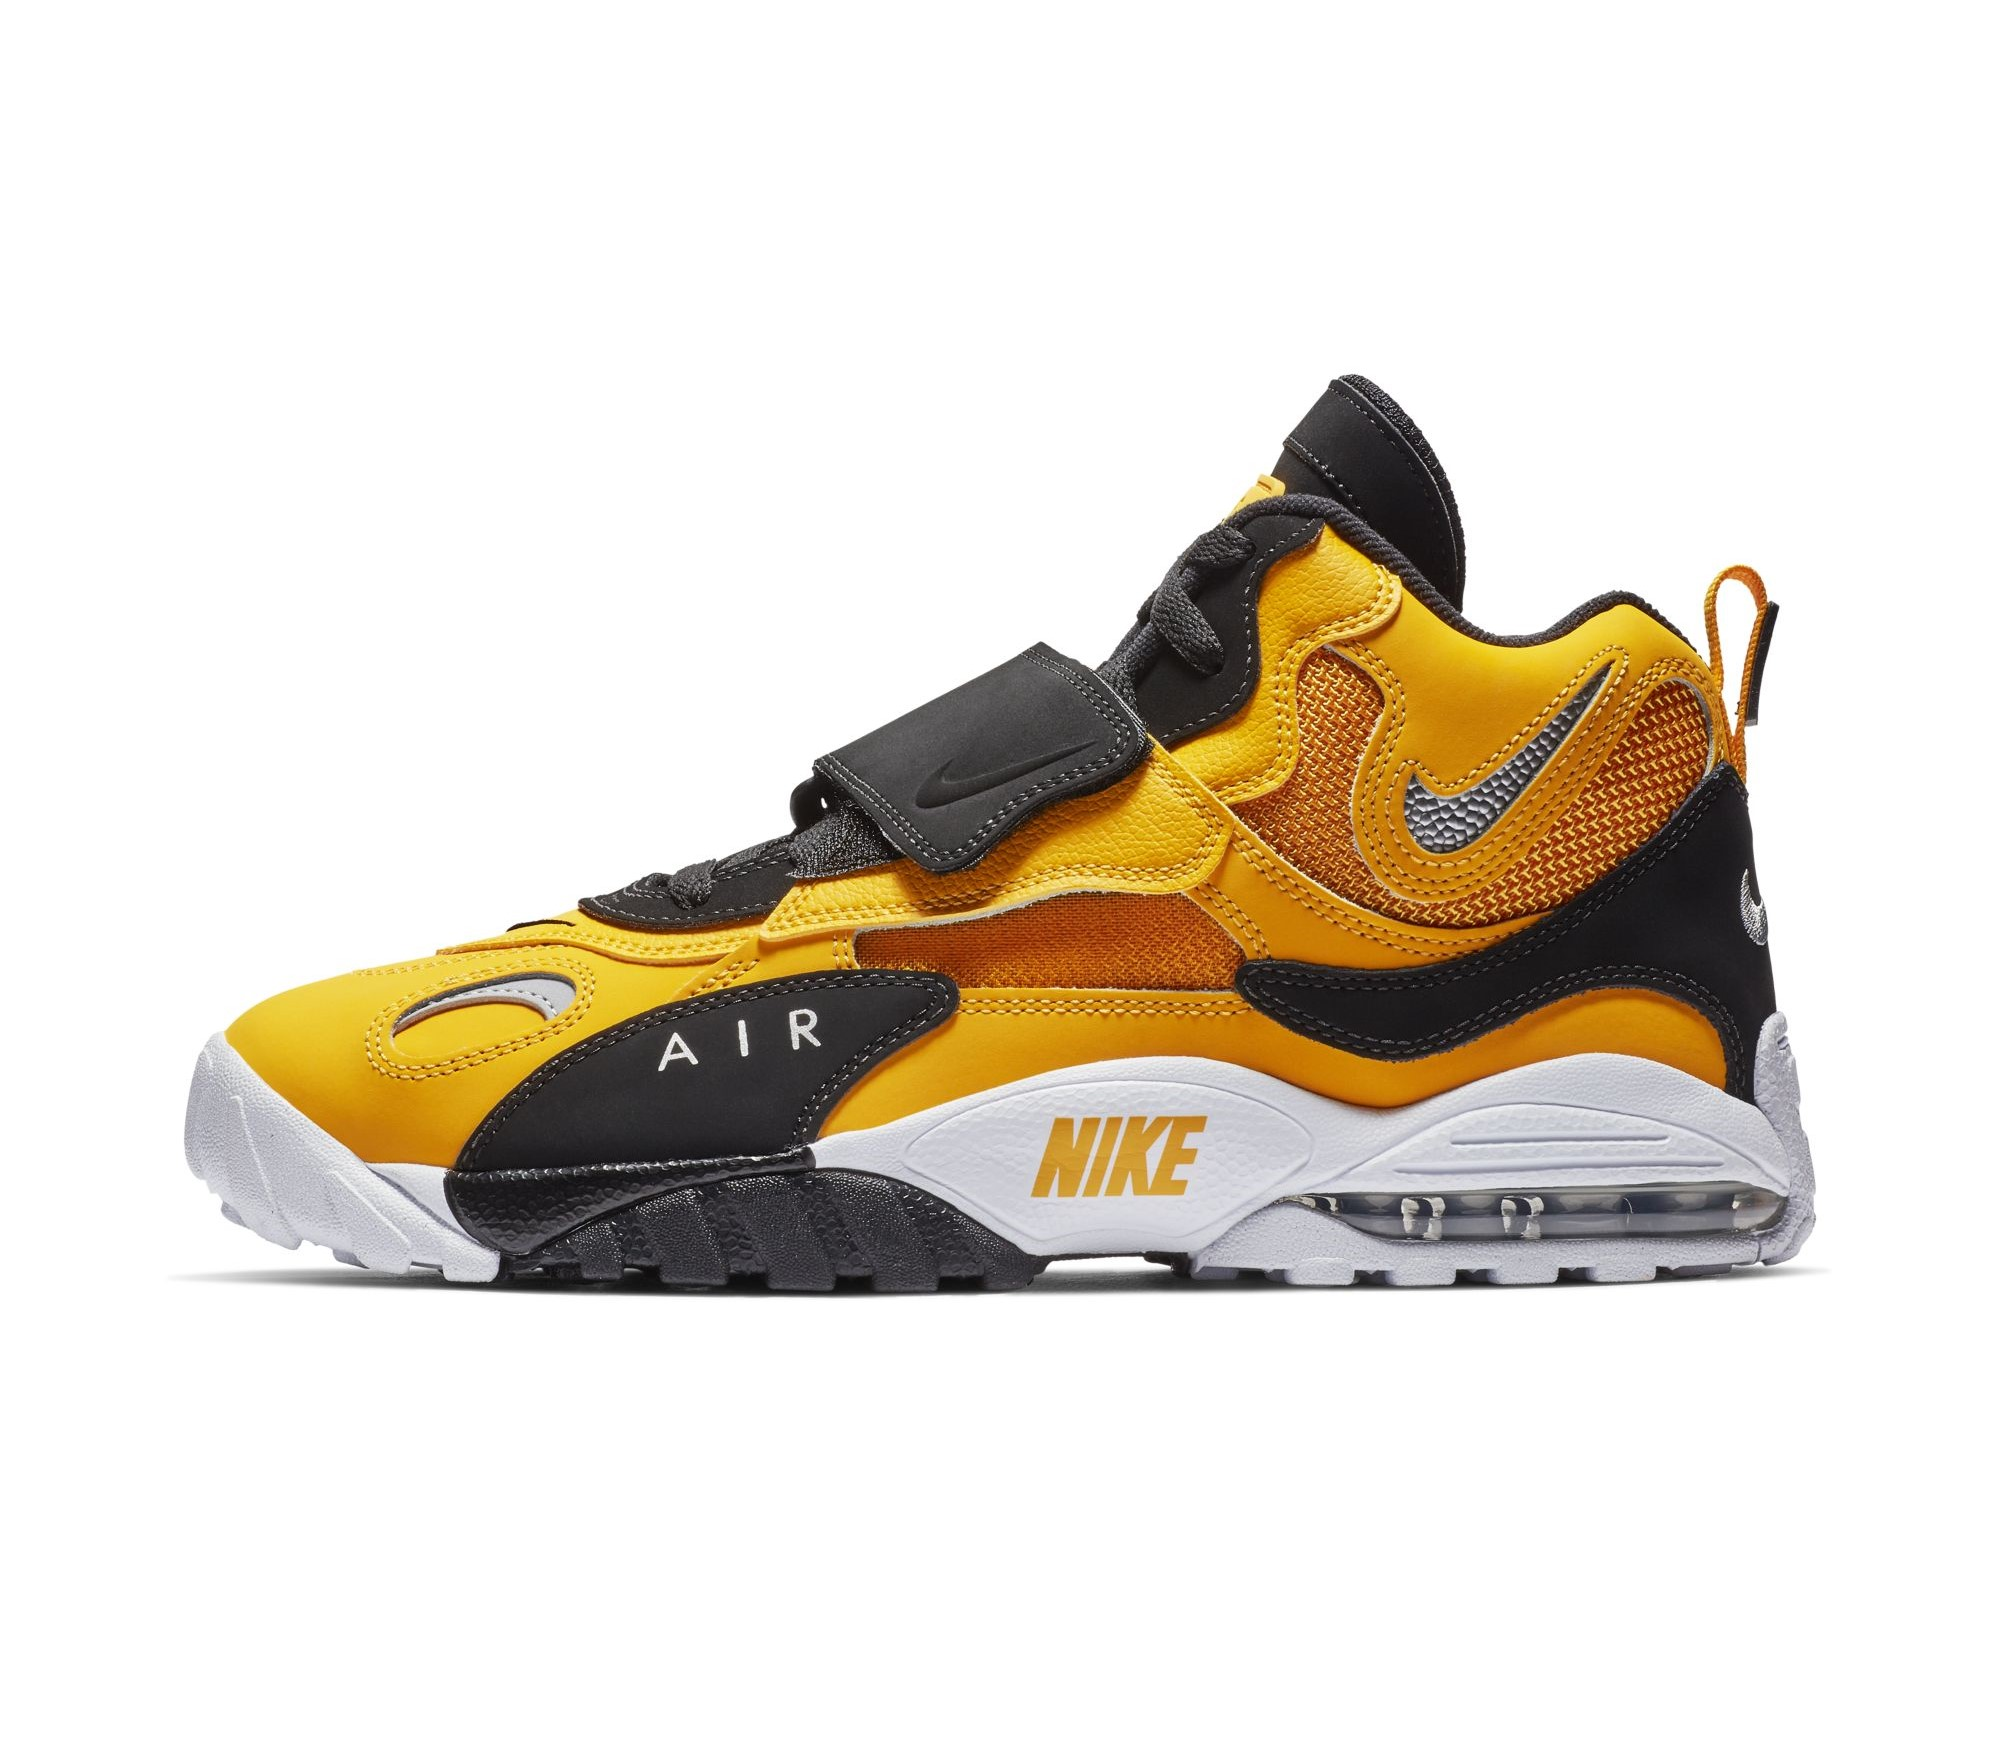 Latón grua Personal  The Nike Air Max Speed Turf Has Arrived in Bold New Looks - WearTesters